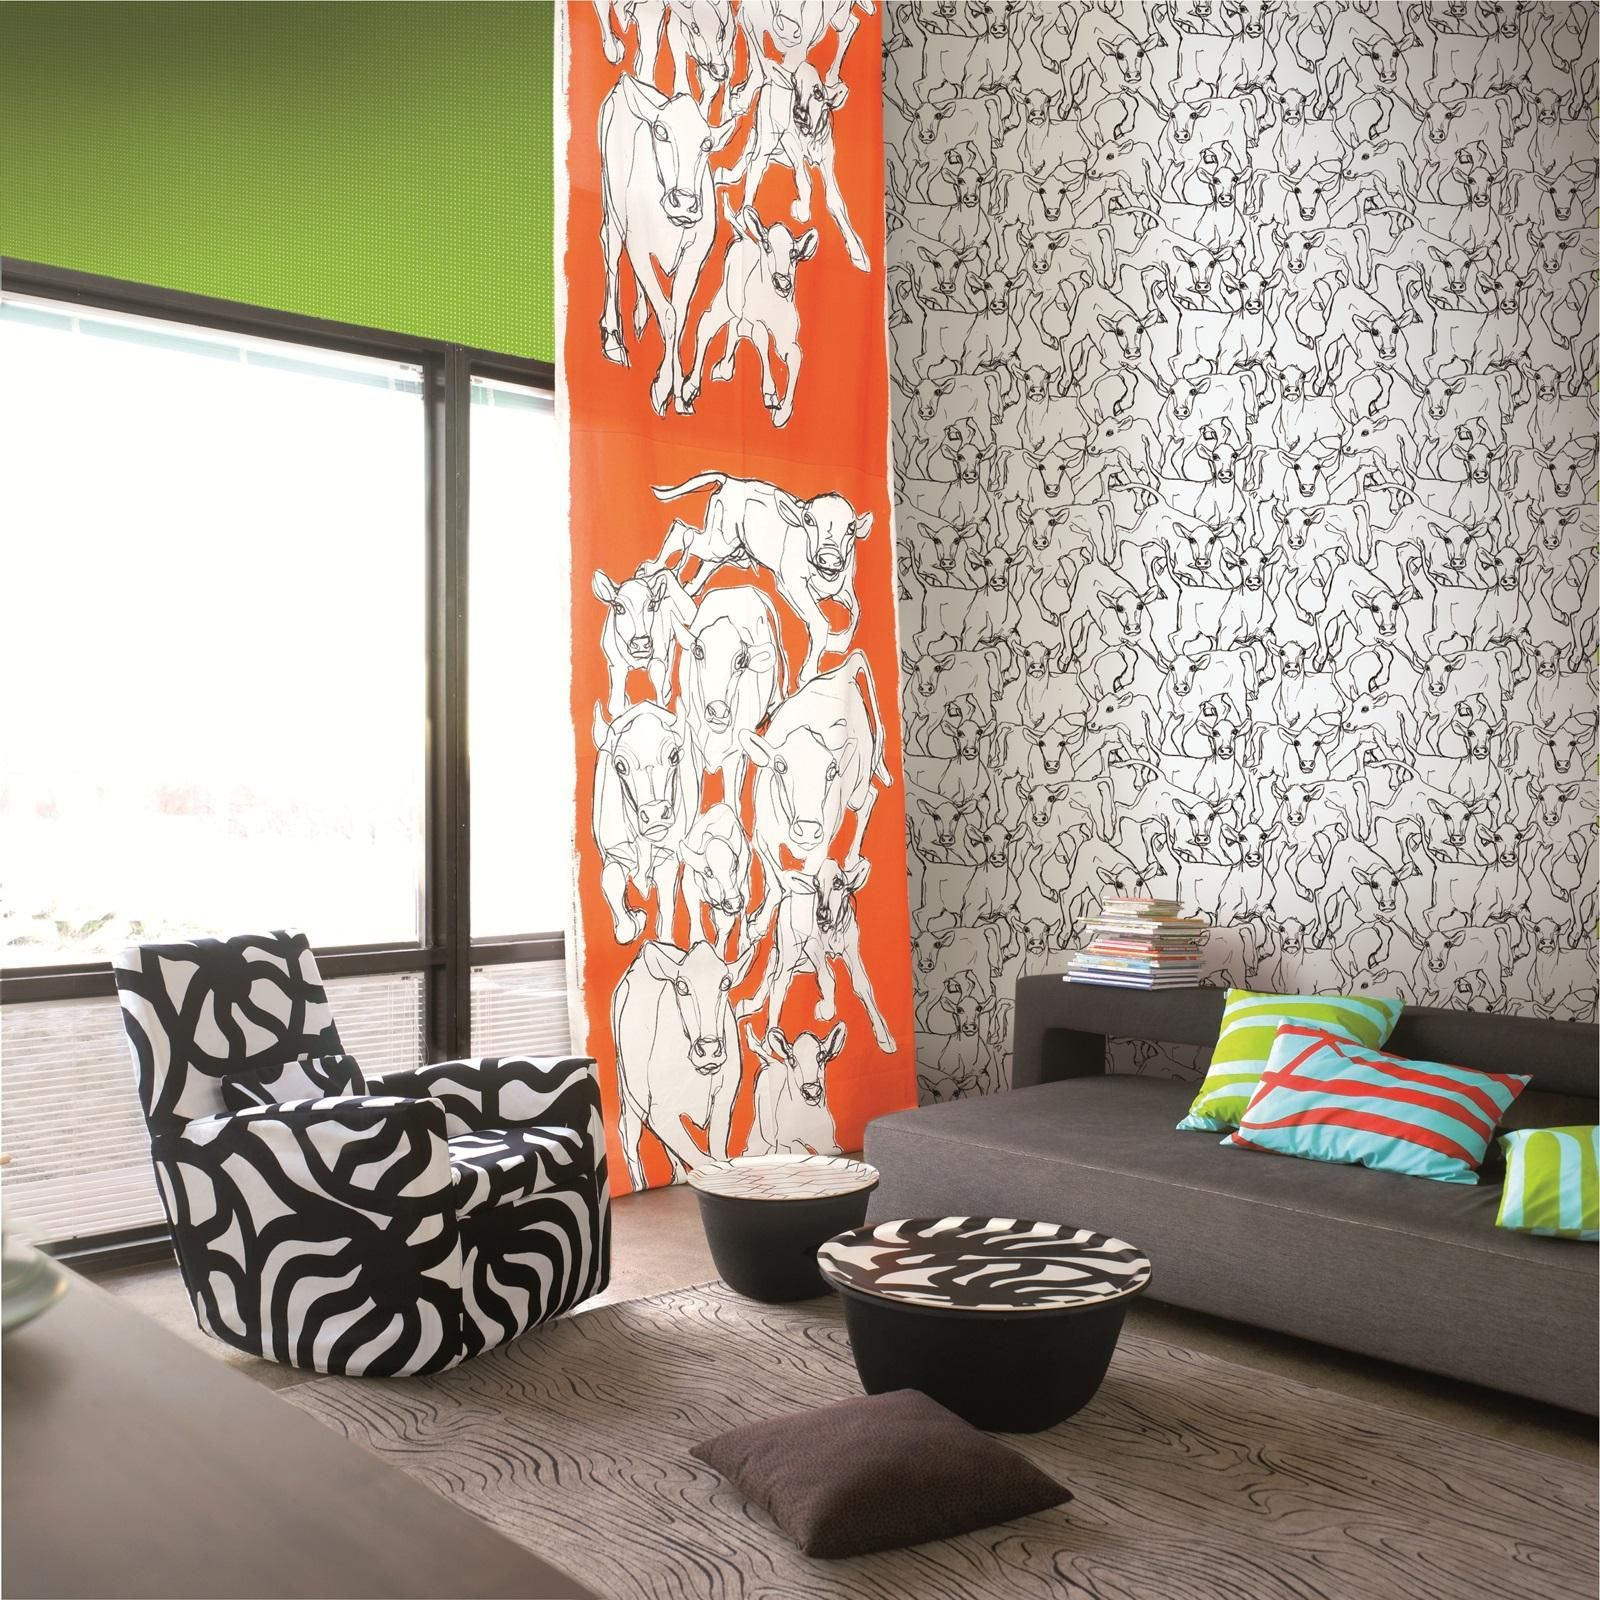 Decorating Colorful Living Room Interior With Animal